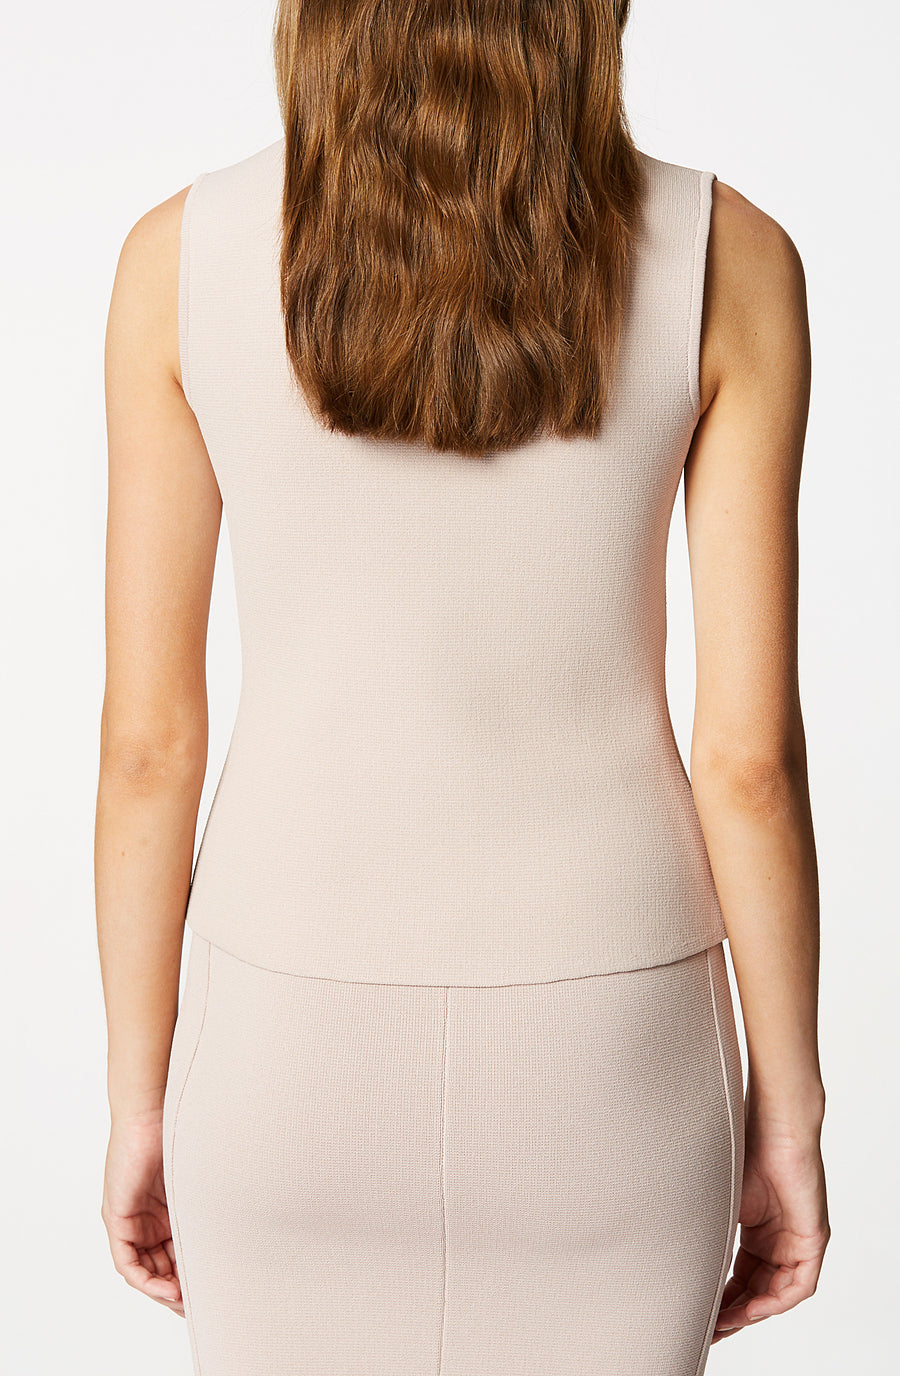 CREPE KNIT MILANO TANK, MINK color